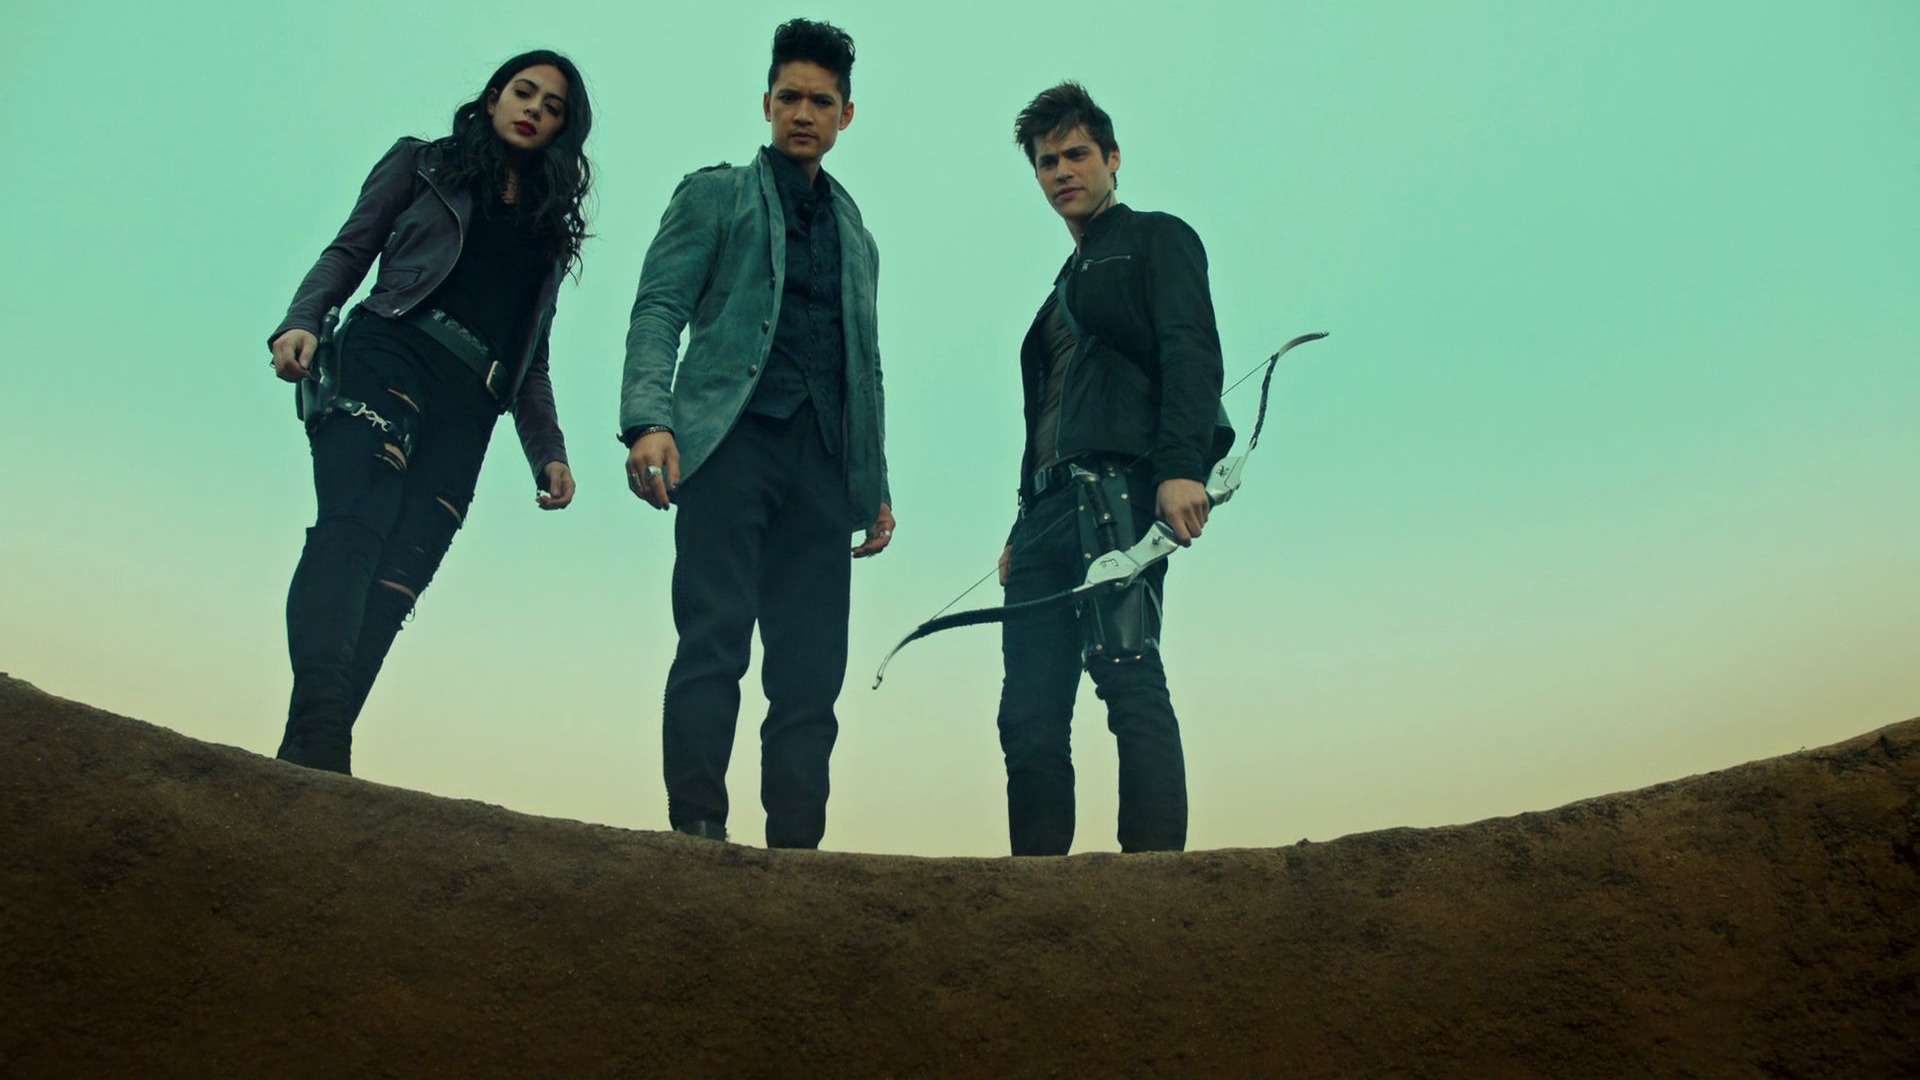 Shadowhunters: The Mortal Instruments — s02e20 — Beside Still Water